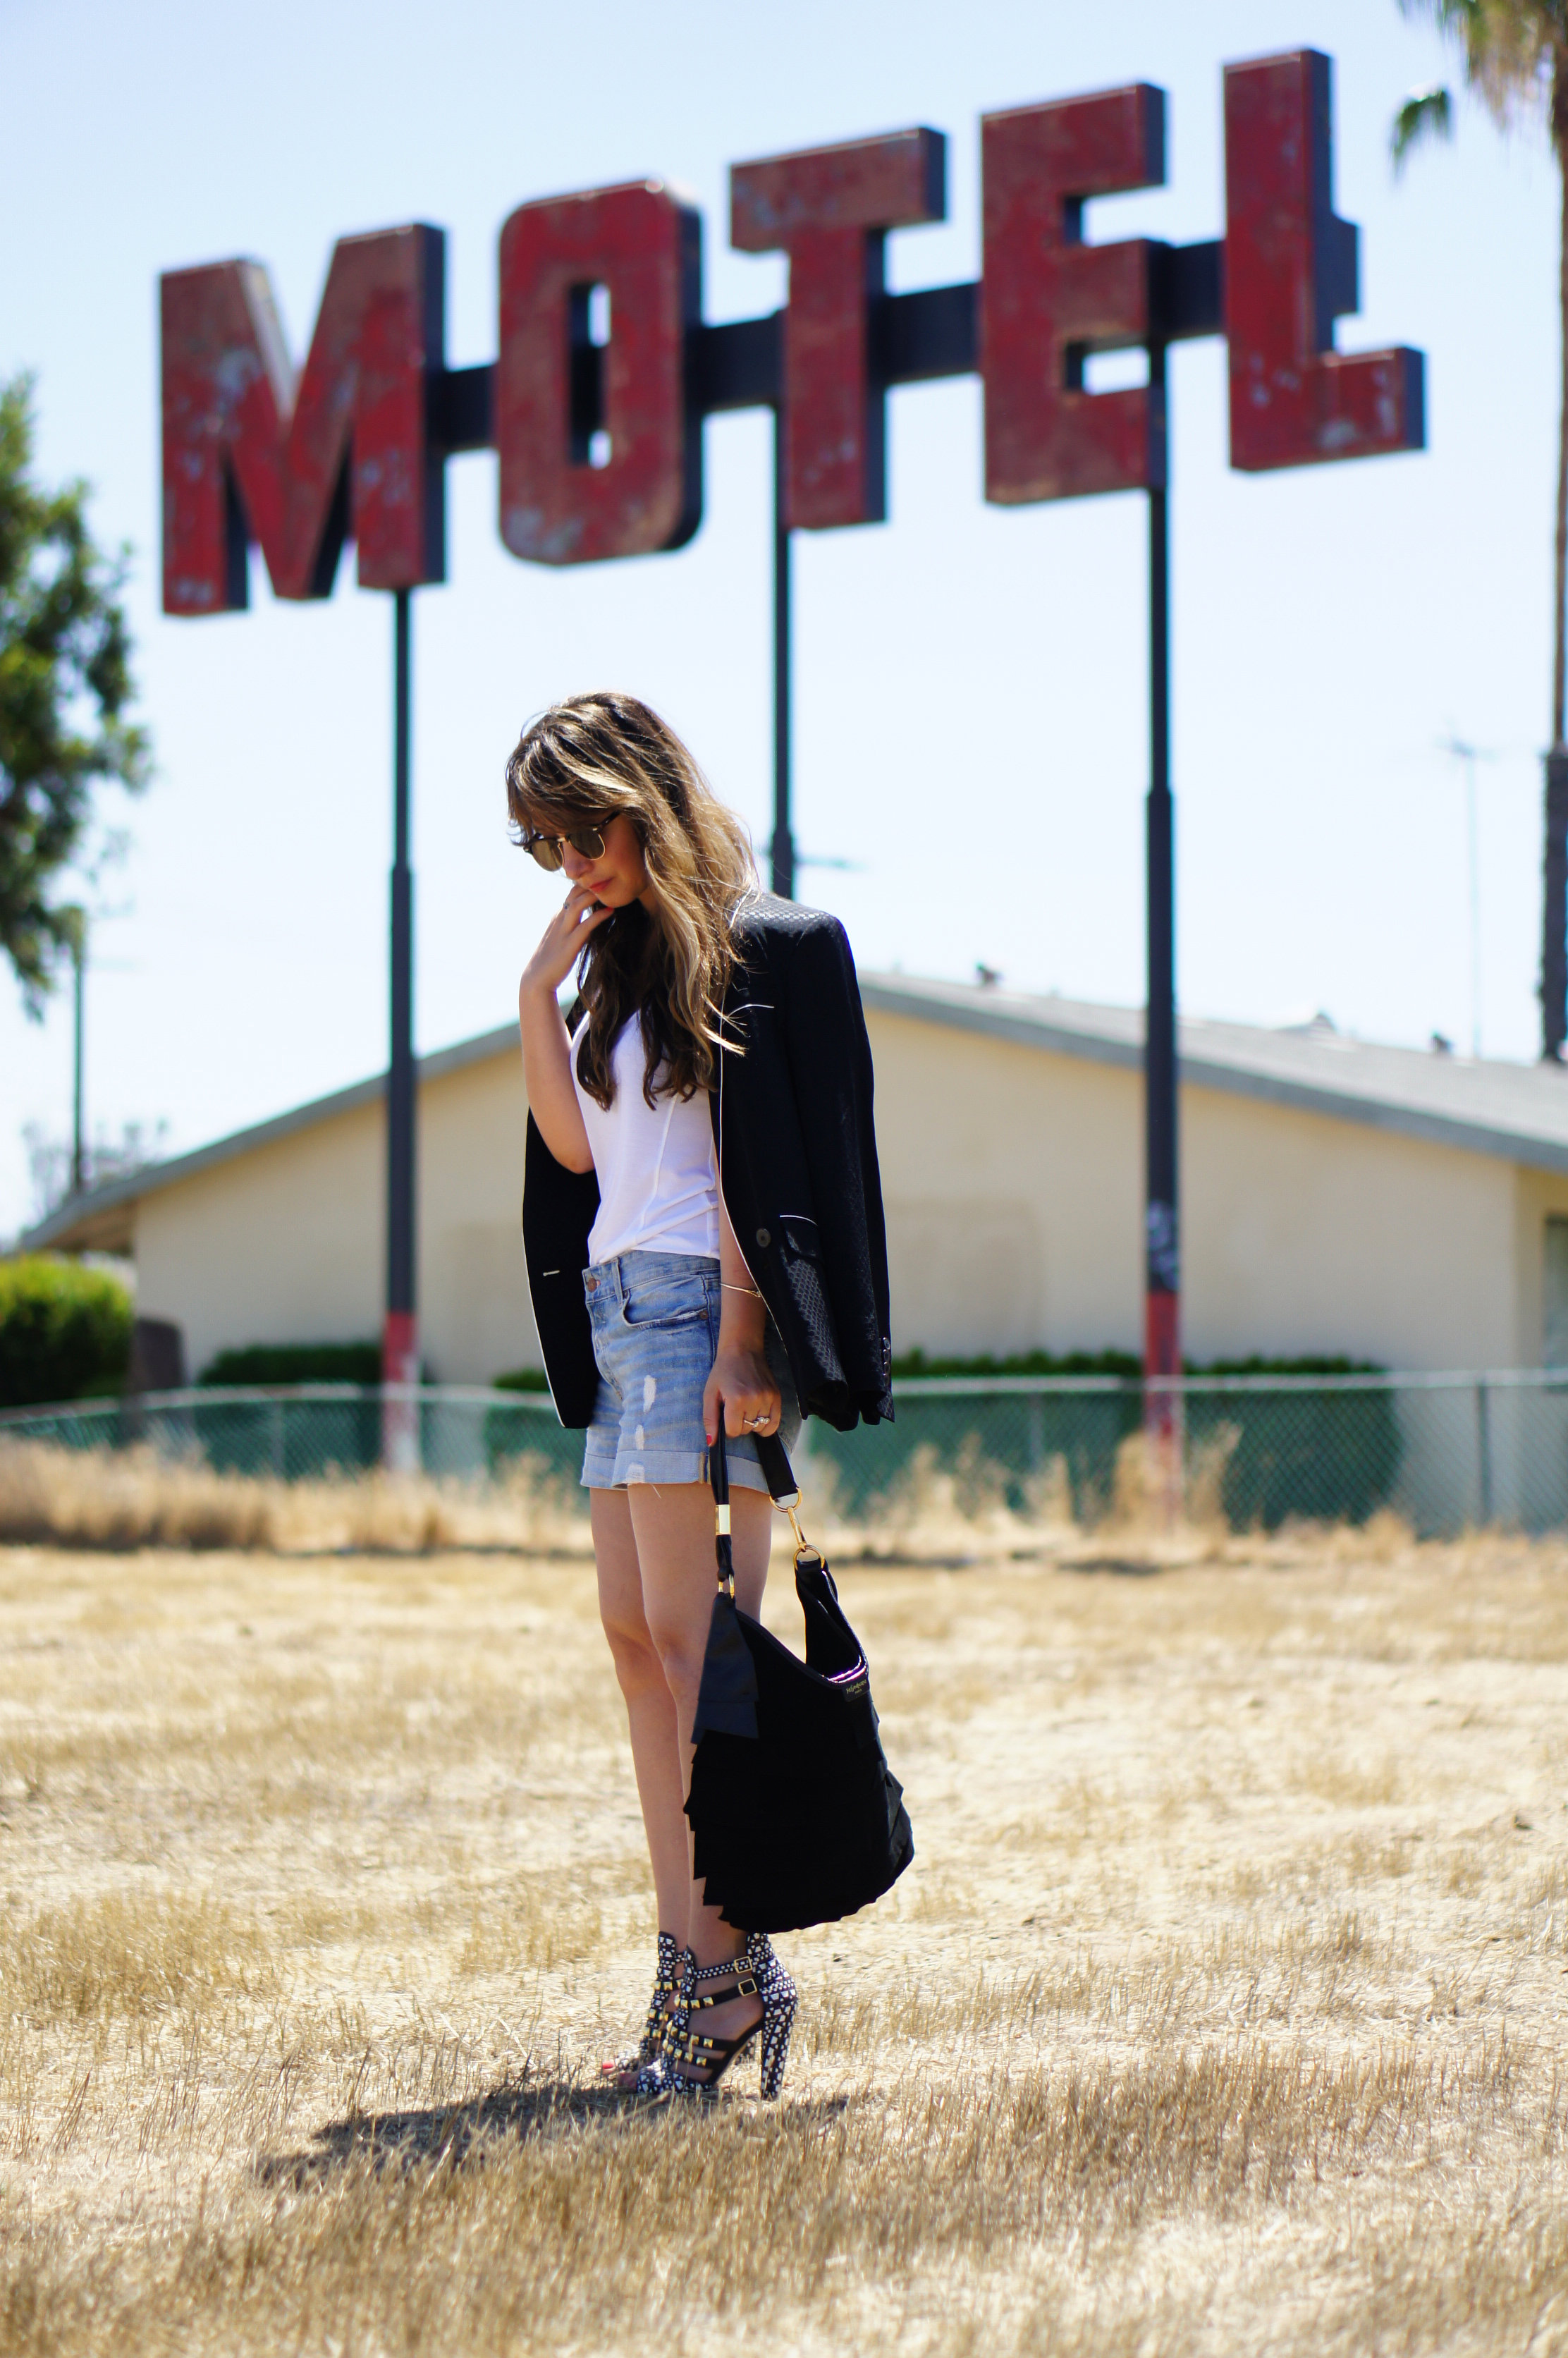 motel, hotel, Las Vegas, California, LA, denim, denim shorts, black blazer, YSL, Yves Saint Laurent, bag, zara, white tee, sandals, fashion, style, summer style, summer, California